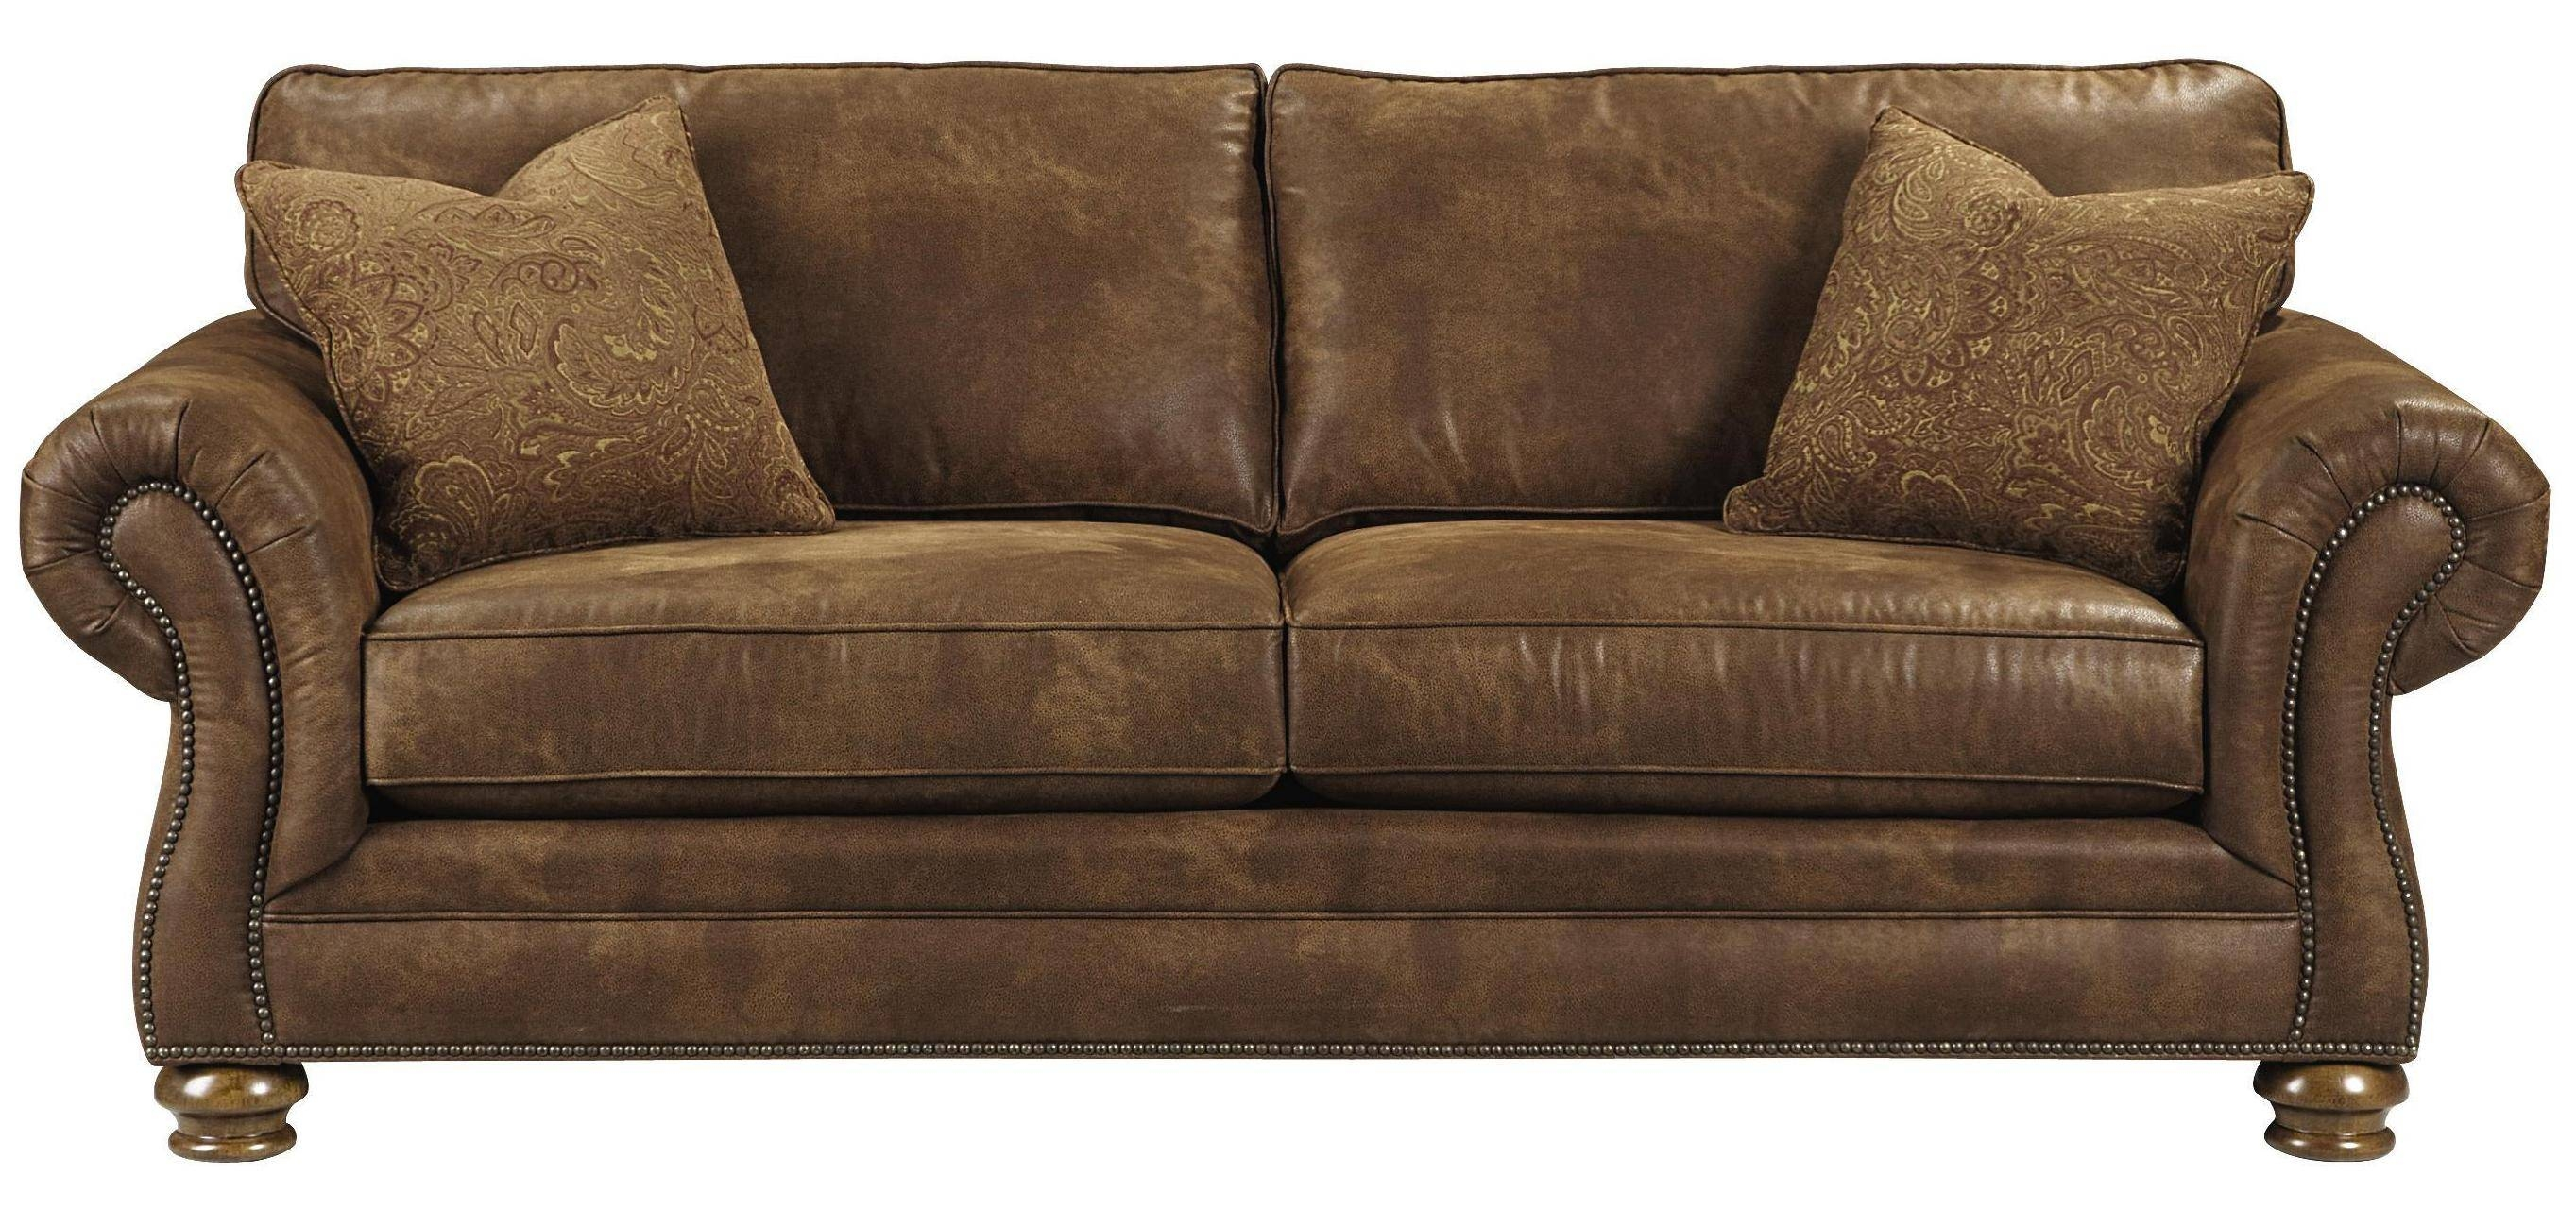 Italian Leather Sectional Sofas | Tehranmix Decoration within Bassett Sofa Bed (Image 12 of 30)